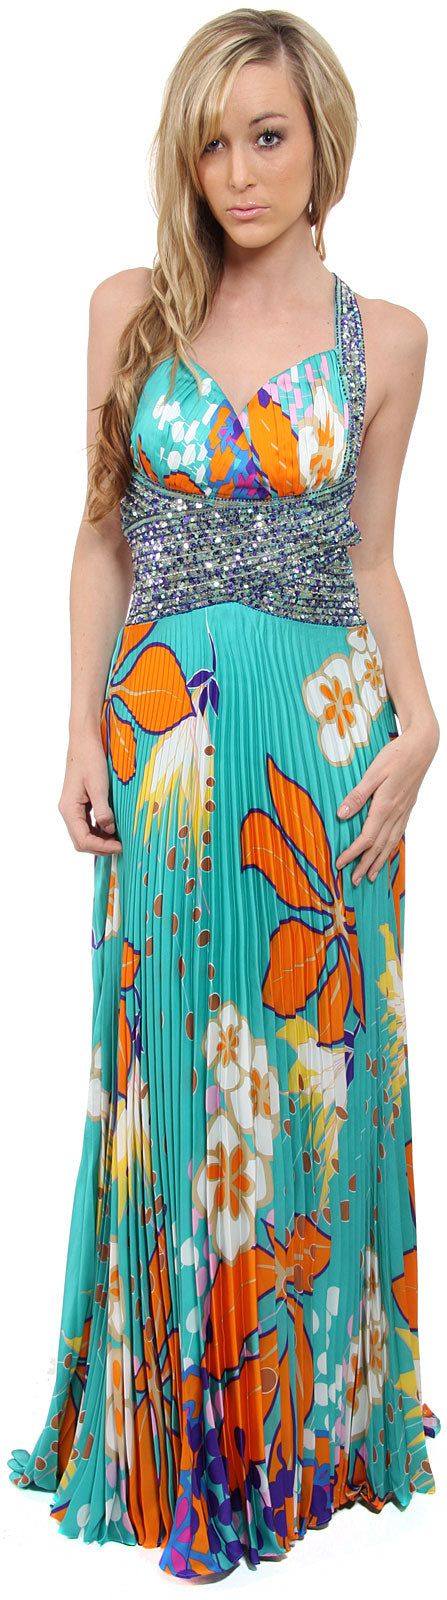 Main image of Tropical Elegance Long Formal Dress